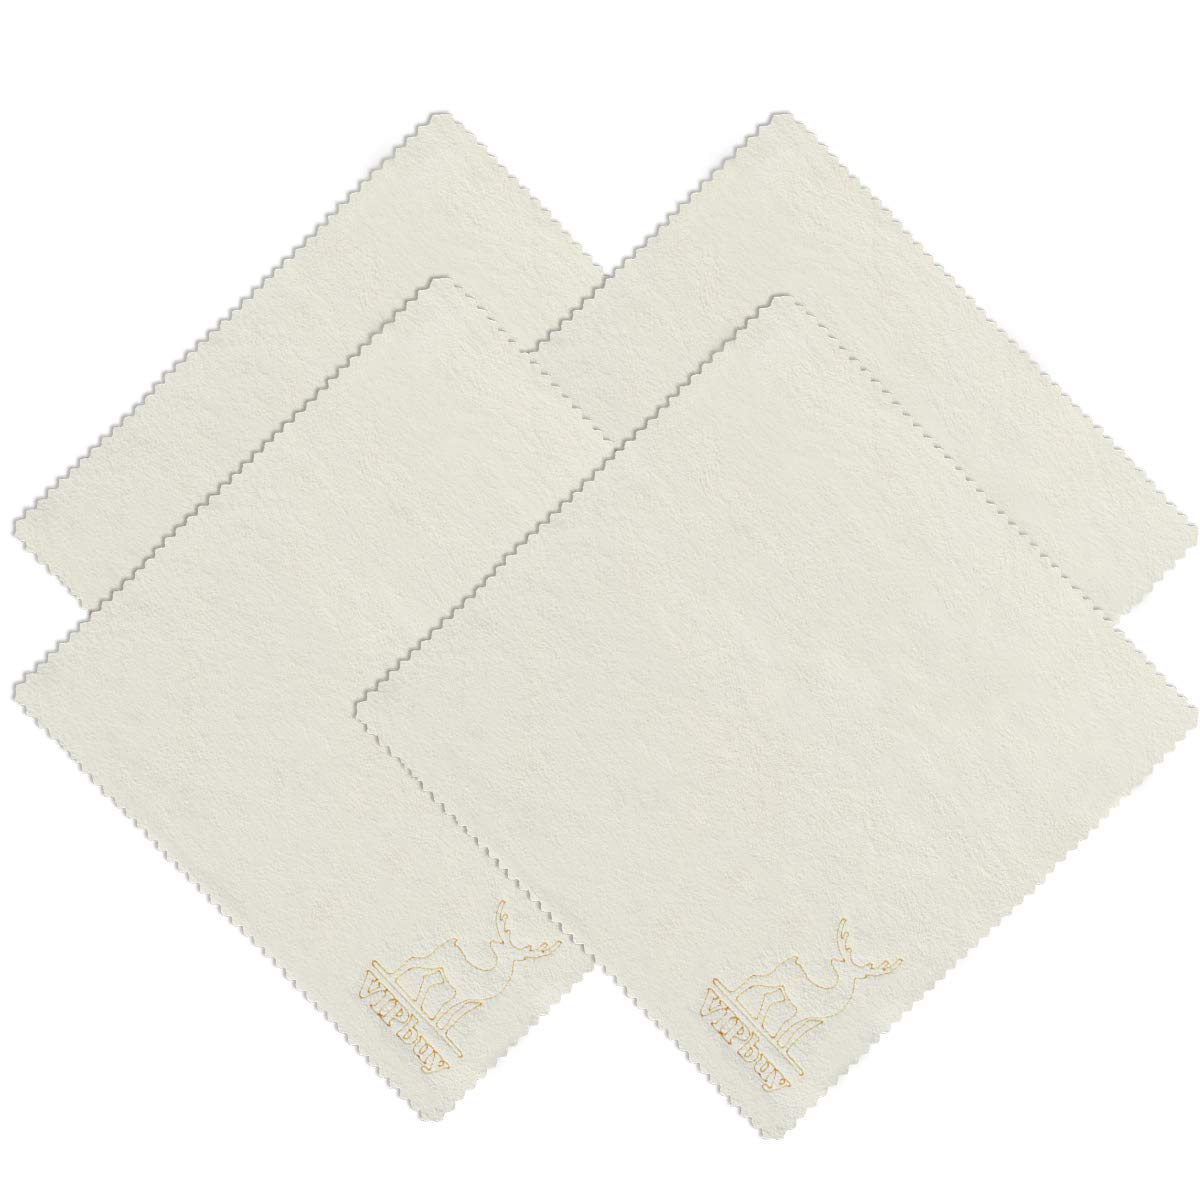 VIPbuy 4 Pack (8'' x 8'') Natural Chamois Leather Cleaning Cloths for Glasses, Eyeglasses, Camera Lens, Cell Phones, Computers, Tablets, LCD Screens, Antique, Instrument by VIPbuy